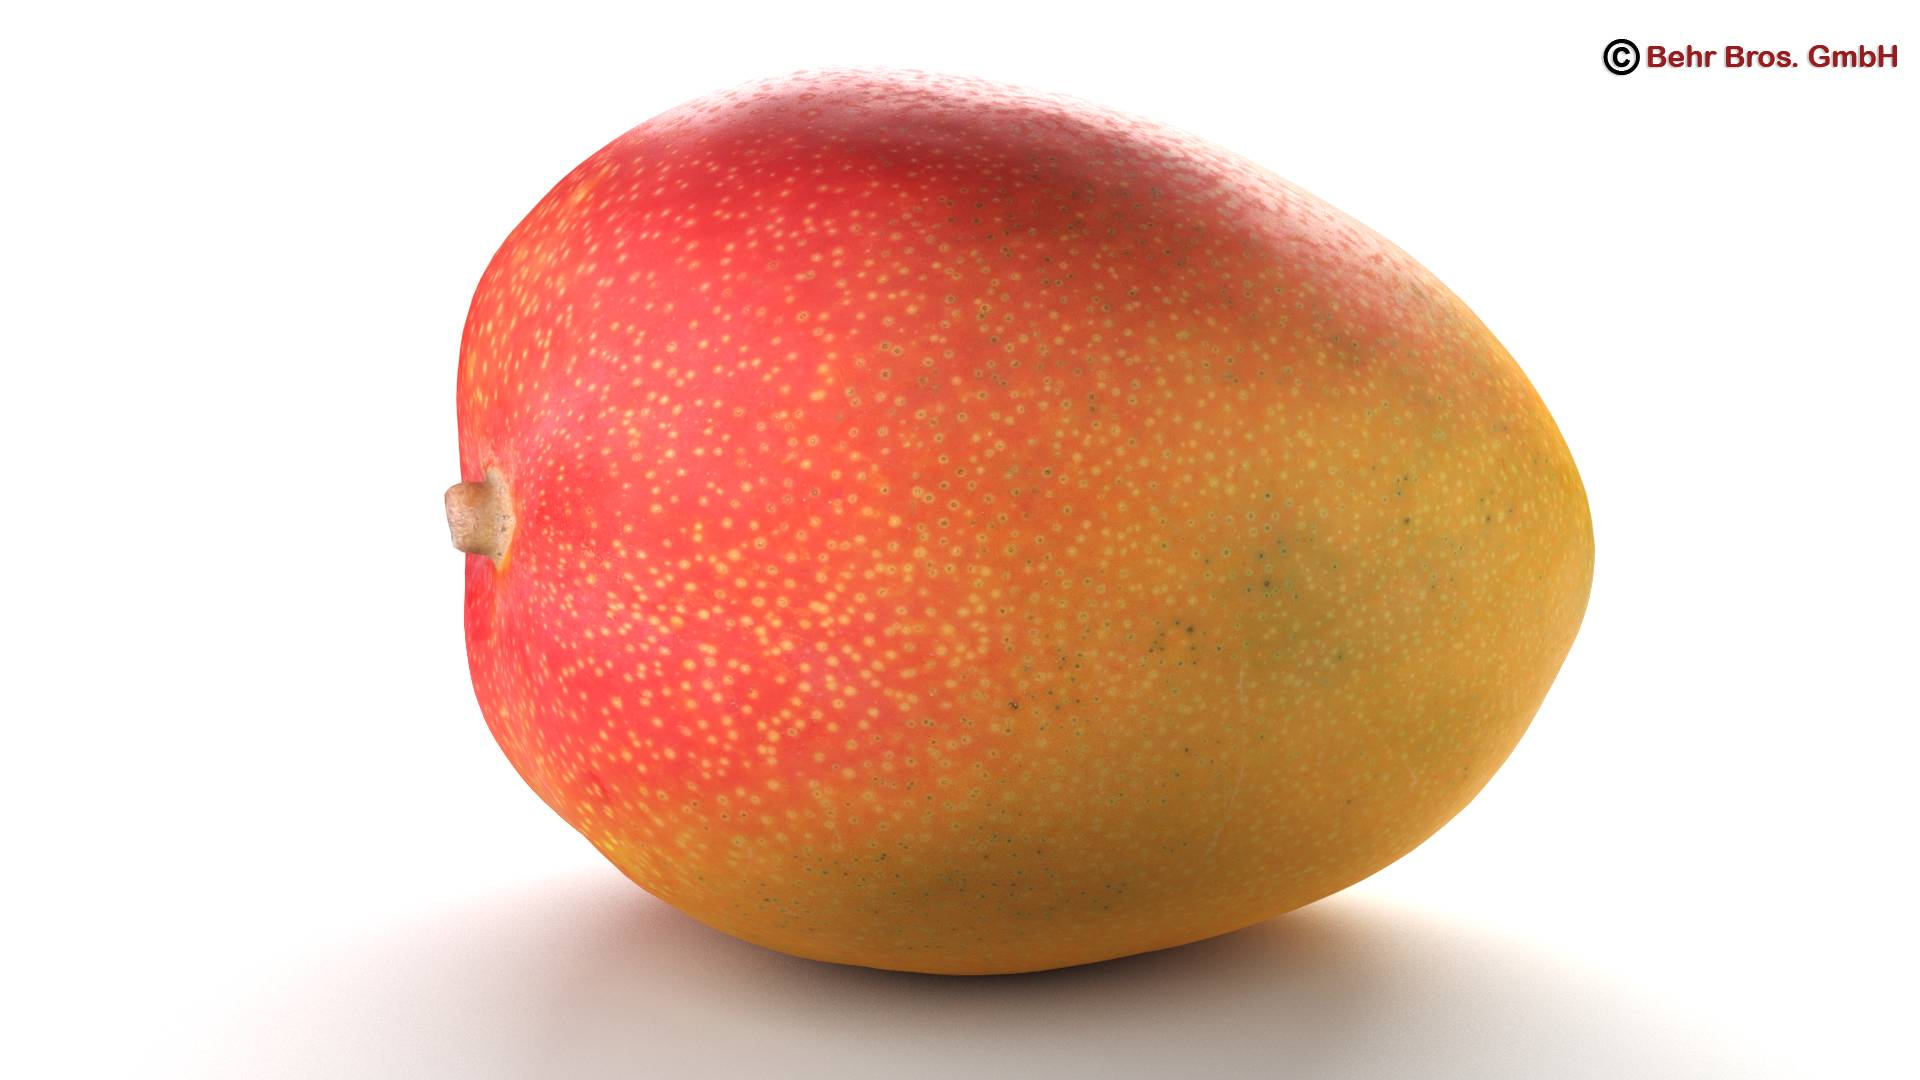 photo realistic mangos 3d model 3ds max fbx c4d lwo ma mb obj 217597